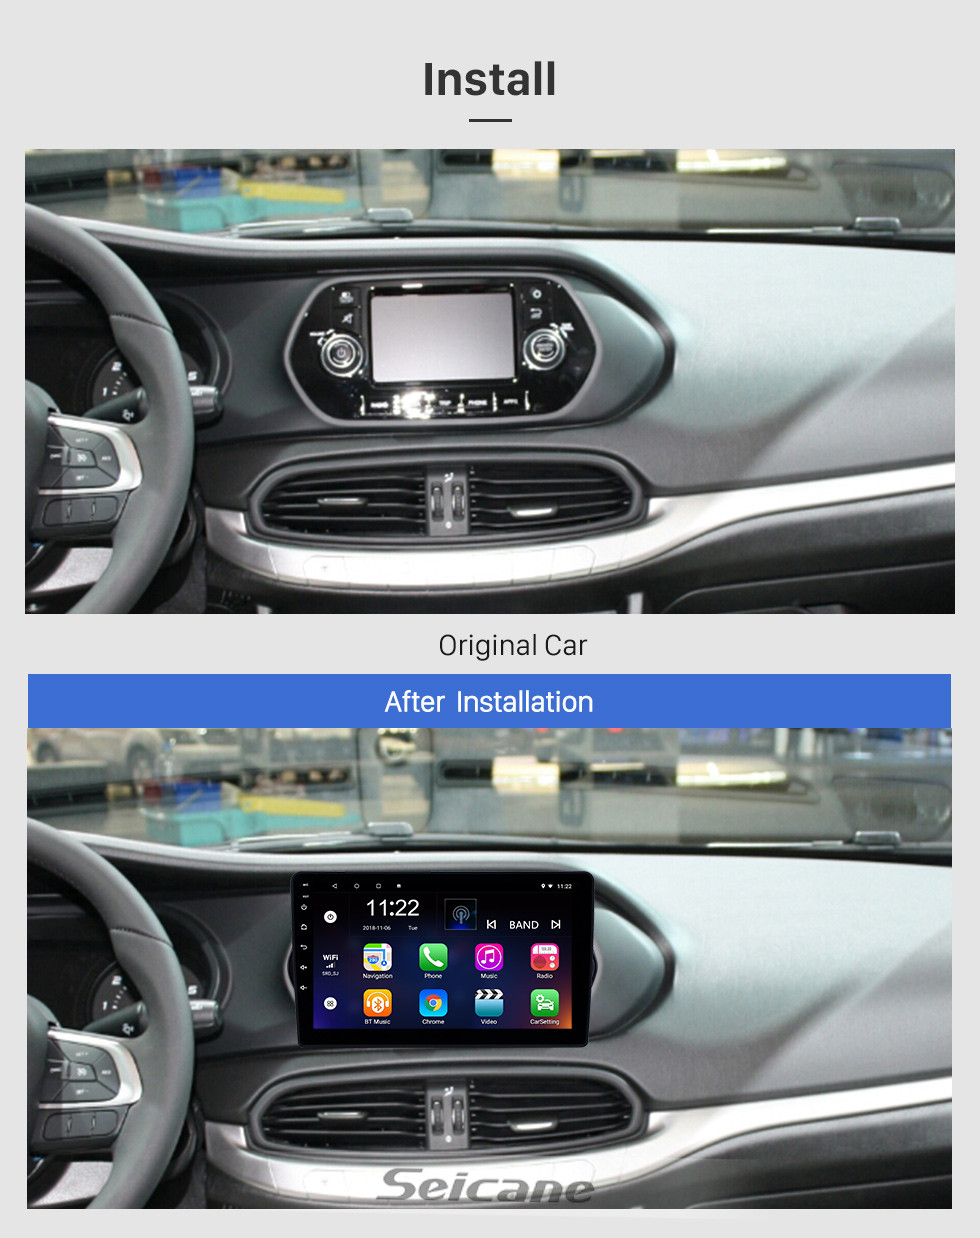 Seicane 2015-2018 Fiat EGEA Android 10.0 HD Touchscreen 9 inch Head Unit Bluetooth GPS Navigation Radio with AUX support OBD2 SWC Carplay